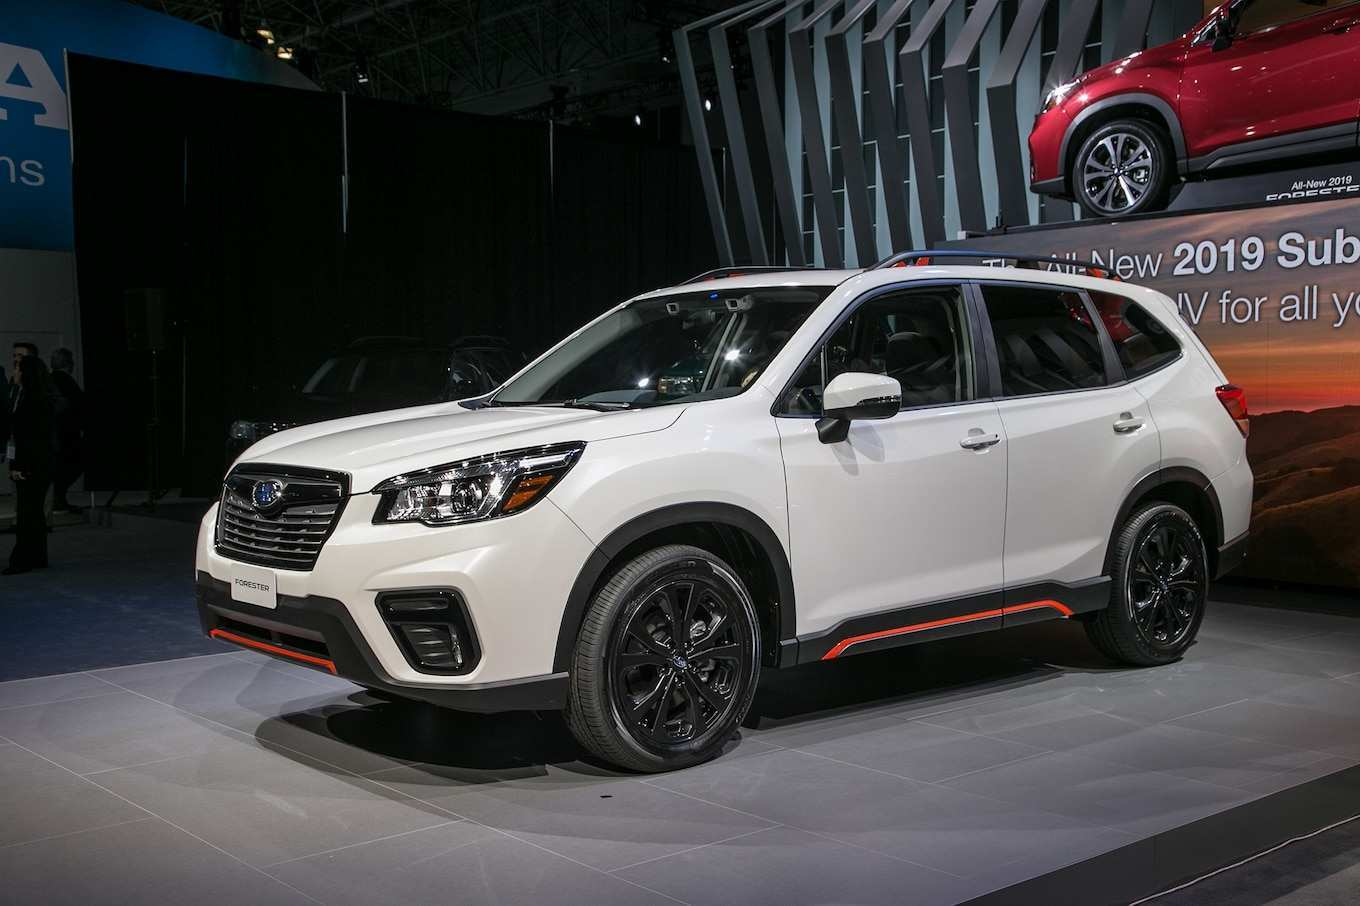 66 Concept of Dimensions Of 2019 Subaru Forester Specs by Dimensions Of 2019 Subaru Forester